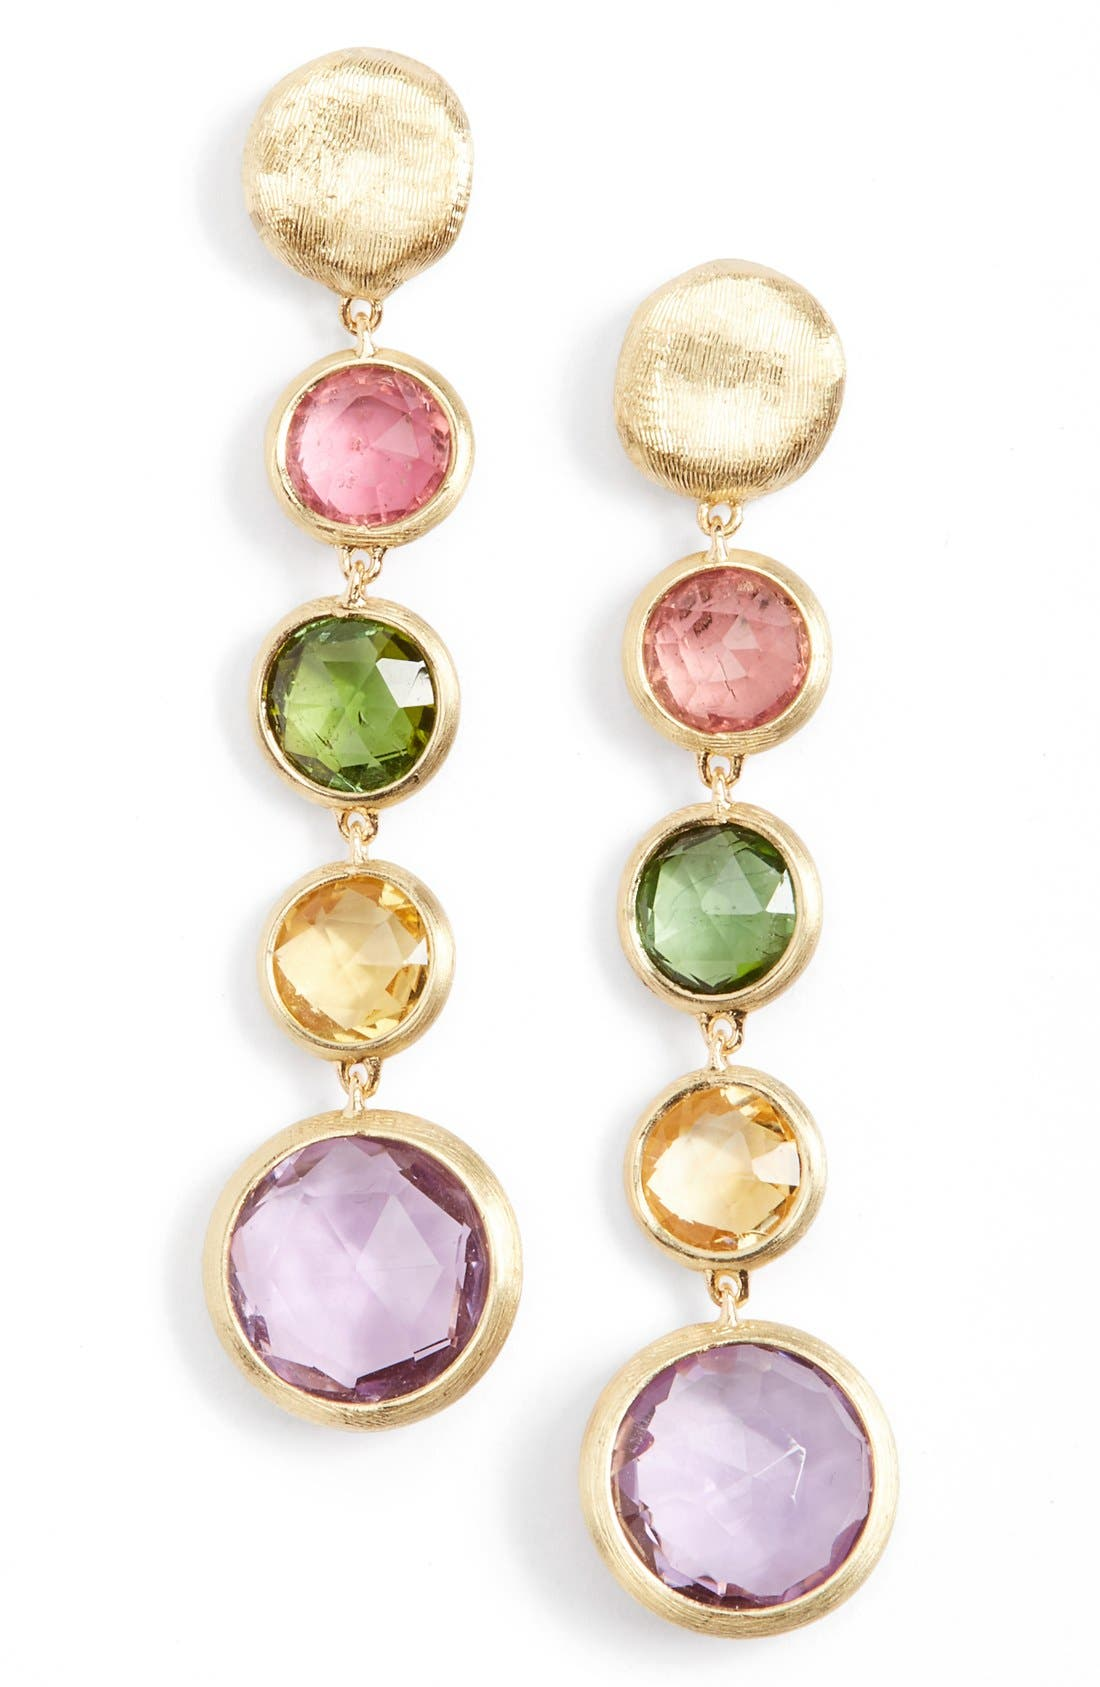 Main Image - Marco Bicego 'Jaipur' Semiprecious Stone Linear Earrings